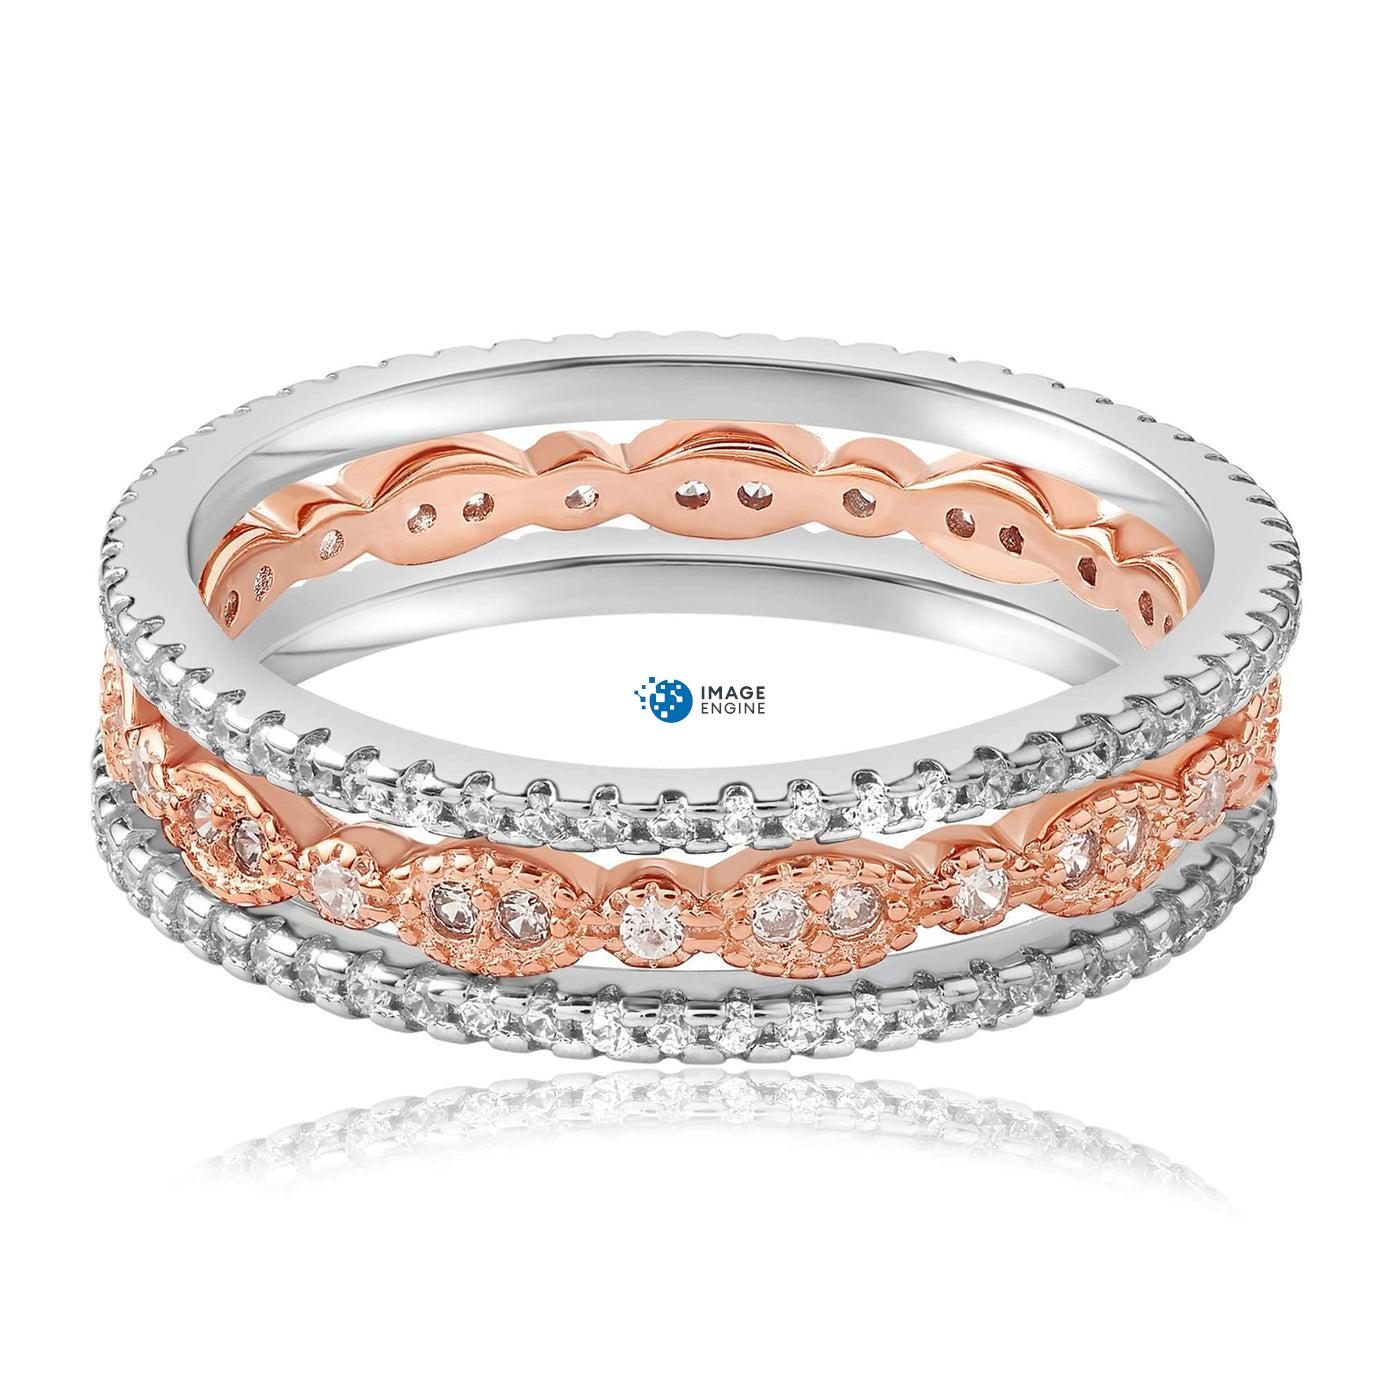 Juliana 3 Ring Set - Front View Facing Down - 18K Rose Gold Vermeil